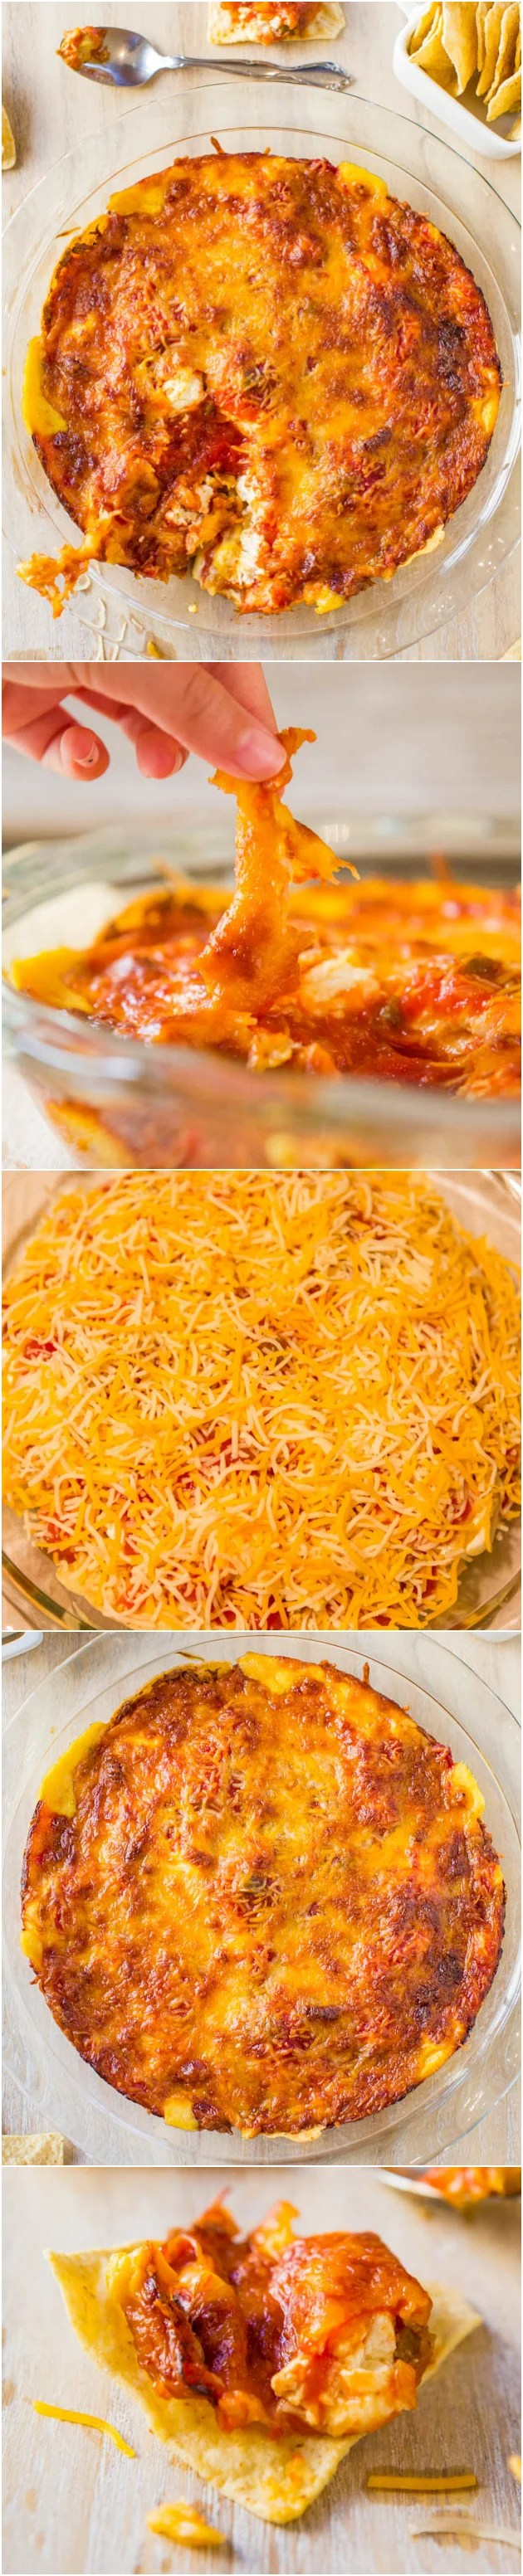 Baked Triple Cheese & Salsa Tortilla Chip Dip - Loaded with 3 kinds of cheese & baked to browned, bubbly, golden perfection! Always a hit at parties & great for Superbowl! Easy recipe at averiecooks.com